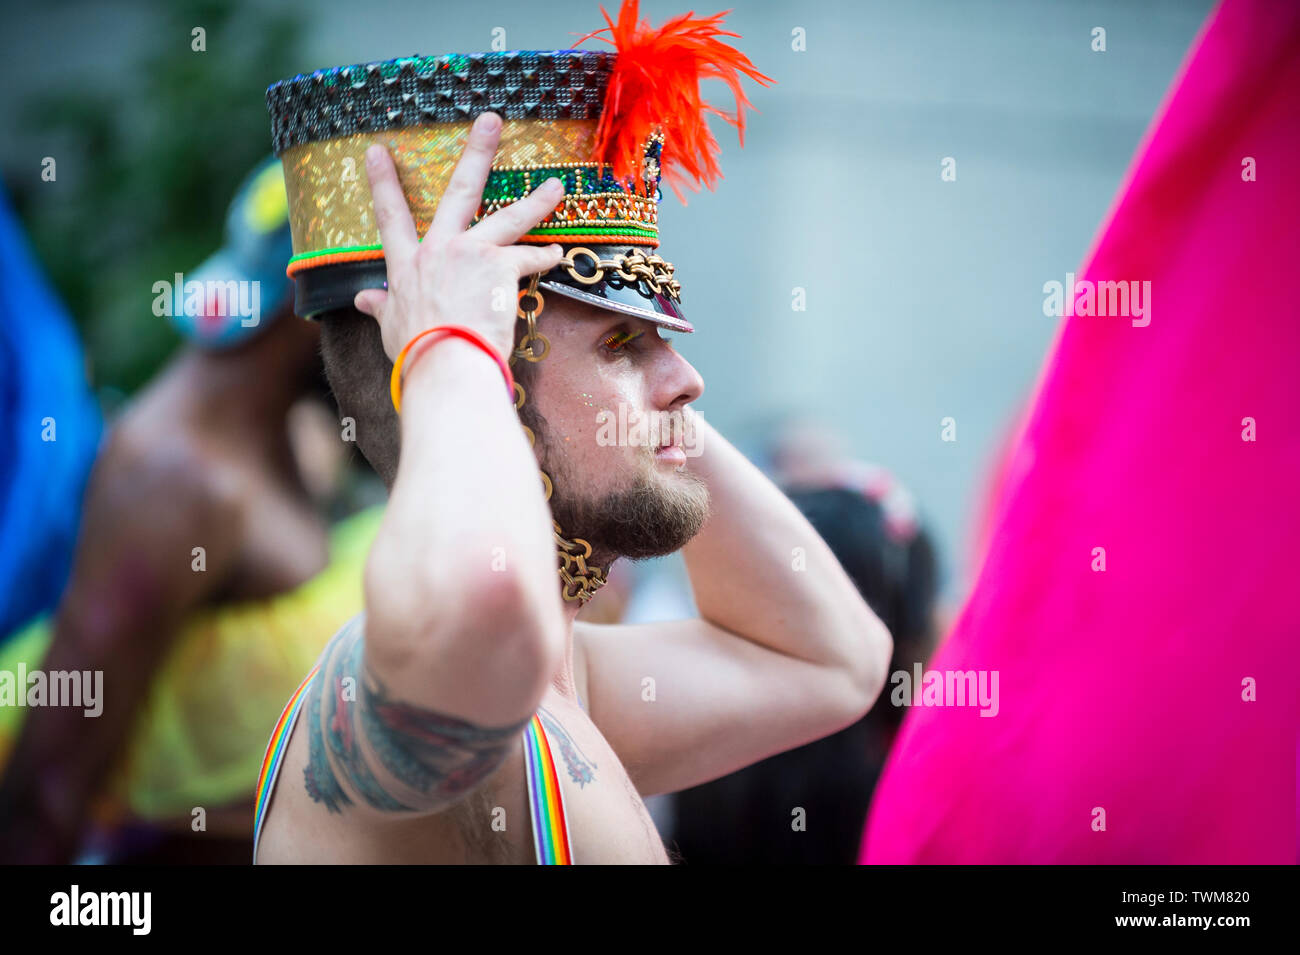 NEW YORK CITY - JUNE 25, 2017: A supporter wears a flamboyant beaded hat in the annual gay Pride Parade as it passes through Greenwich Village. - Stock Image